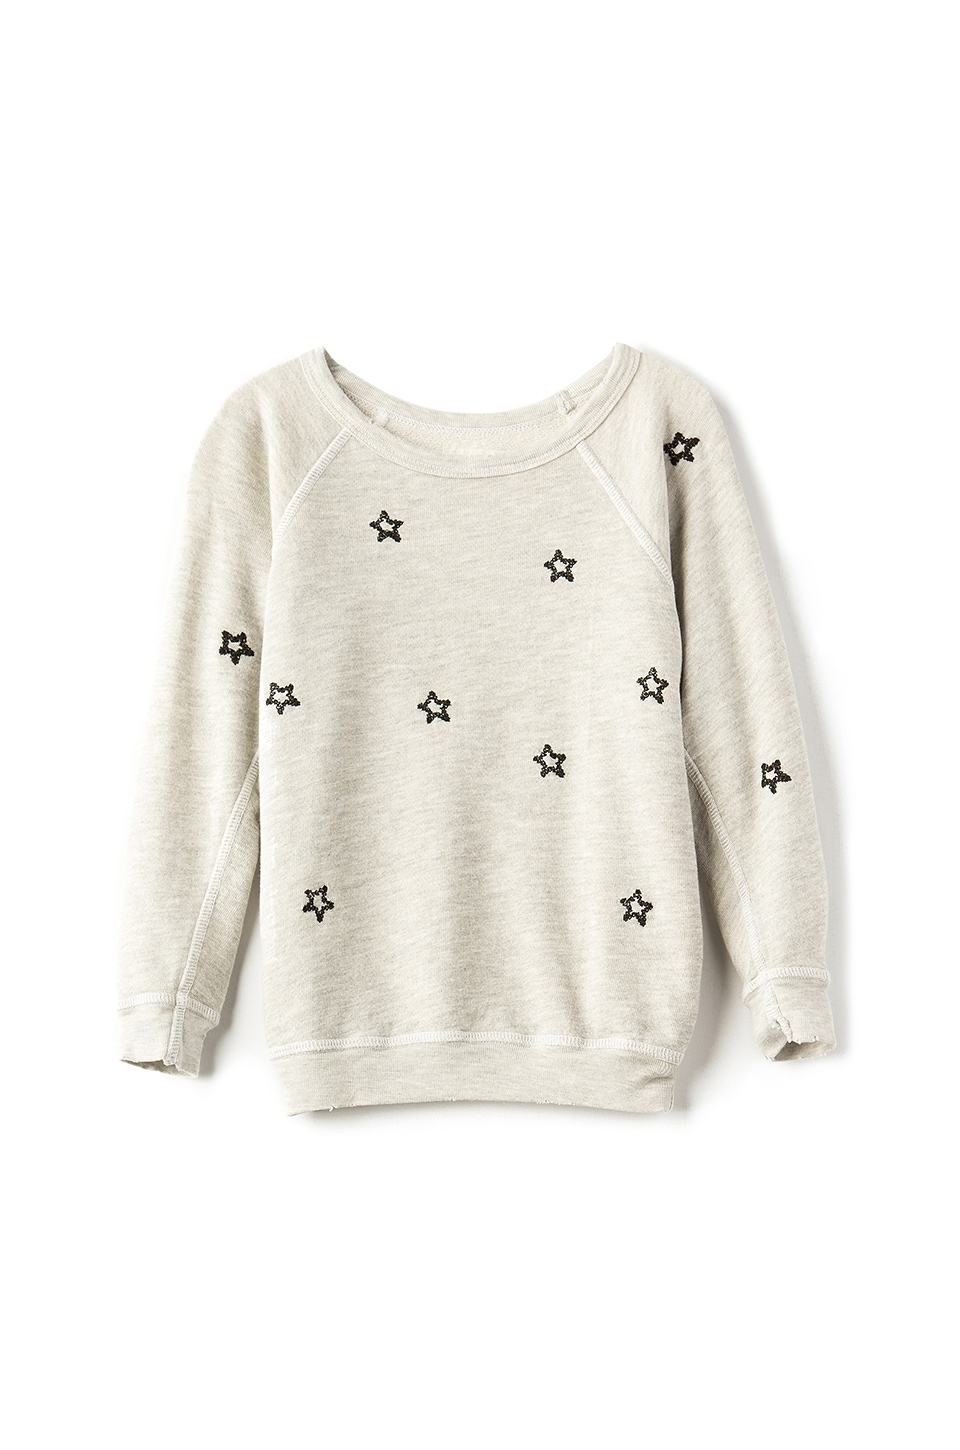 The Little Embroidered Star Sweatshirt